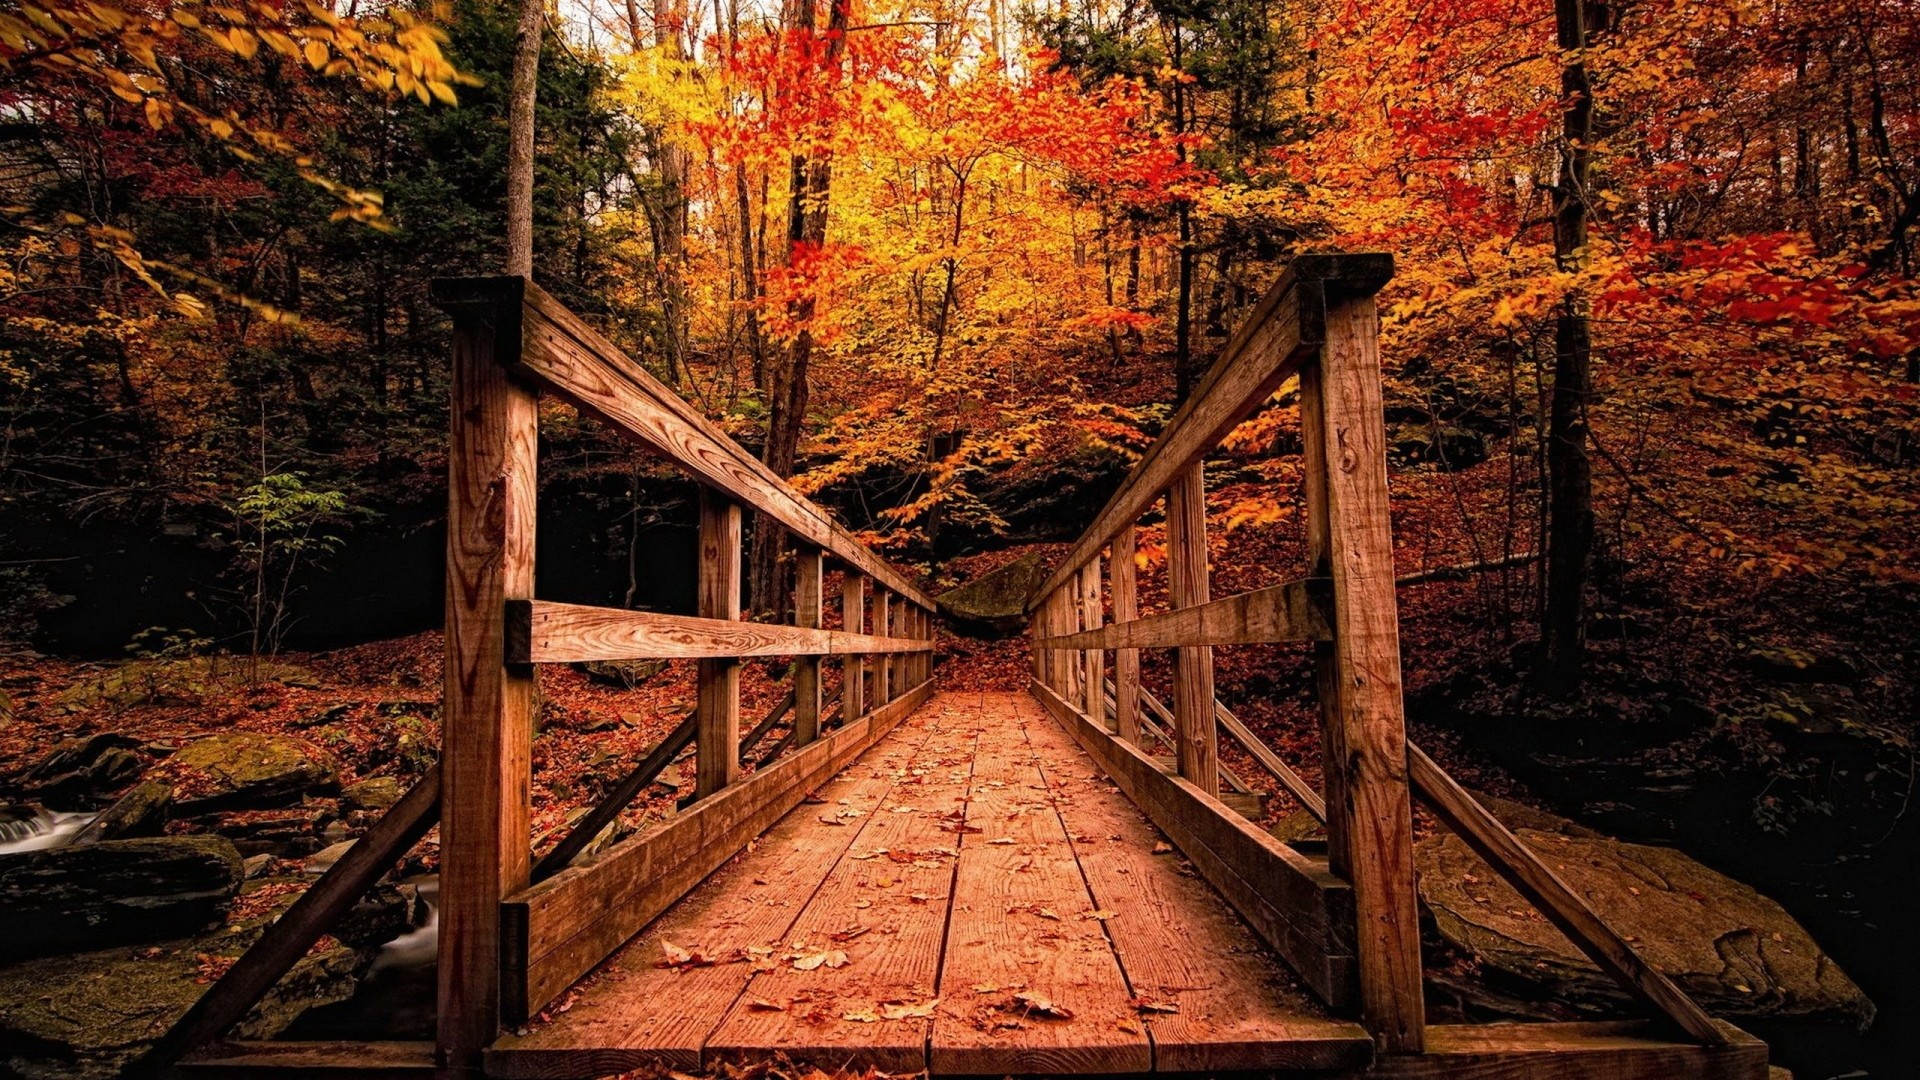 Res: 1920x1080, Nature HD Image Wallpaper wooden structure forest autumn 84511